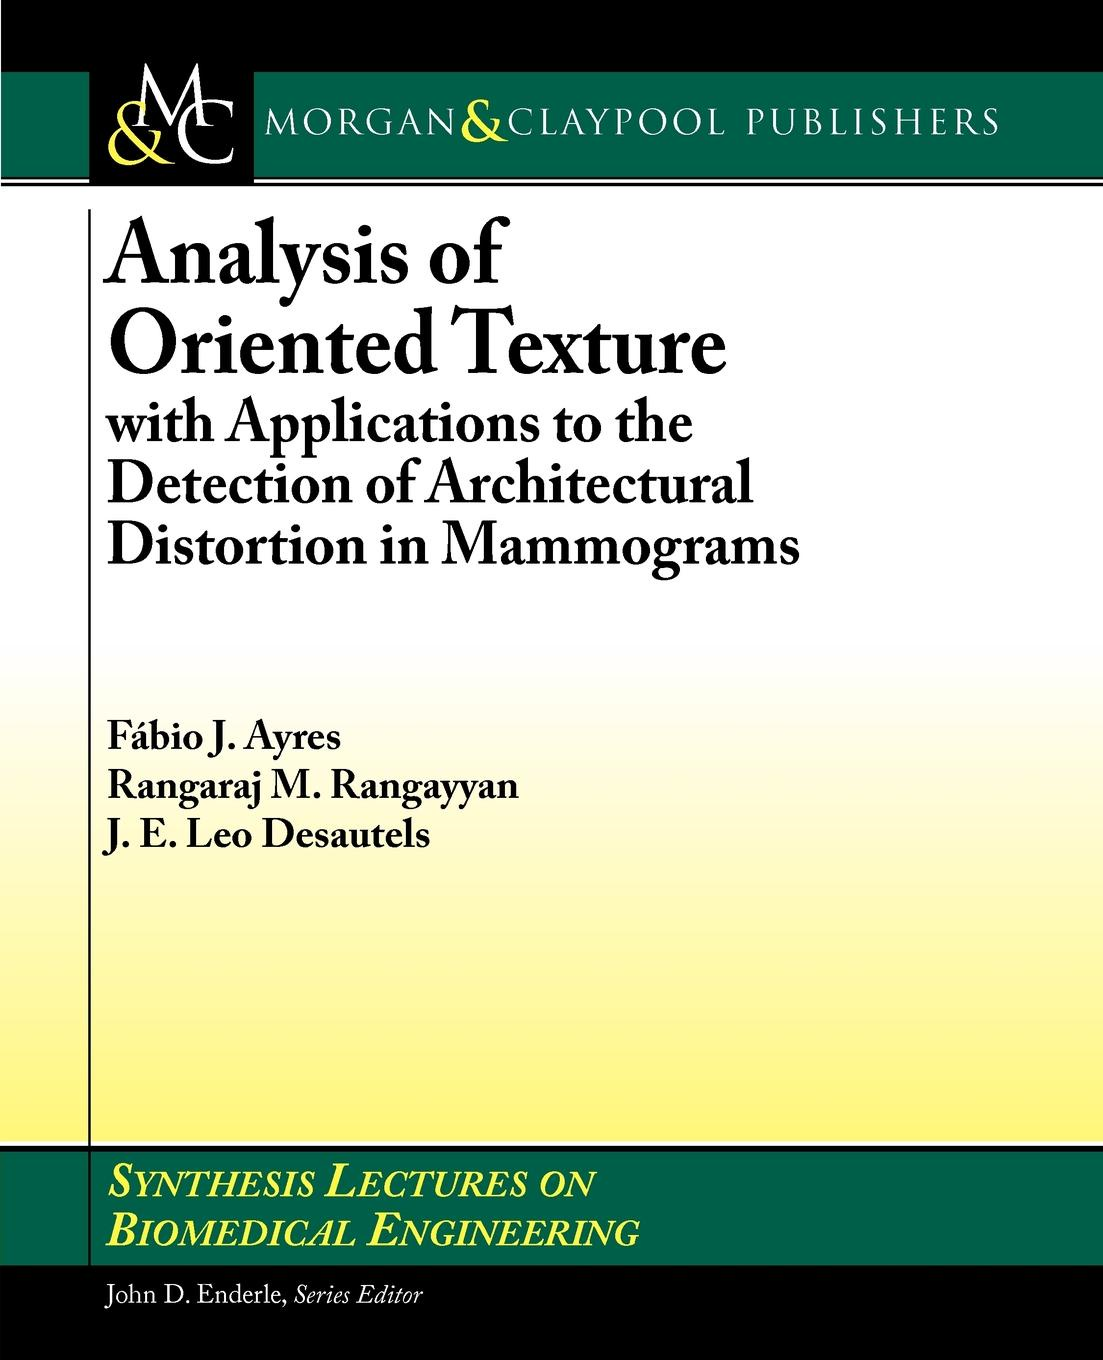 Fabio Ayres, Rangaraj Rangayyan, J.E. Leo Desautels Analysis of Oriented Texture with Applications to the Detection of Architectural Distortion in Mammograms kyle gabhart service oriented architecture field guide for executives